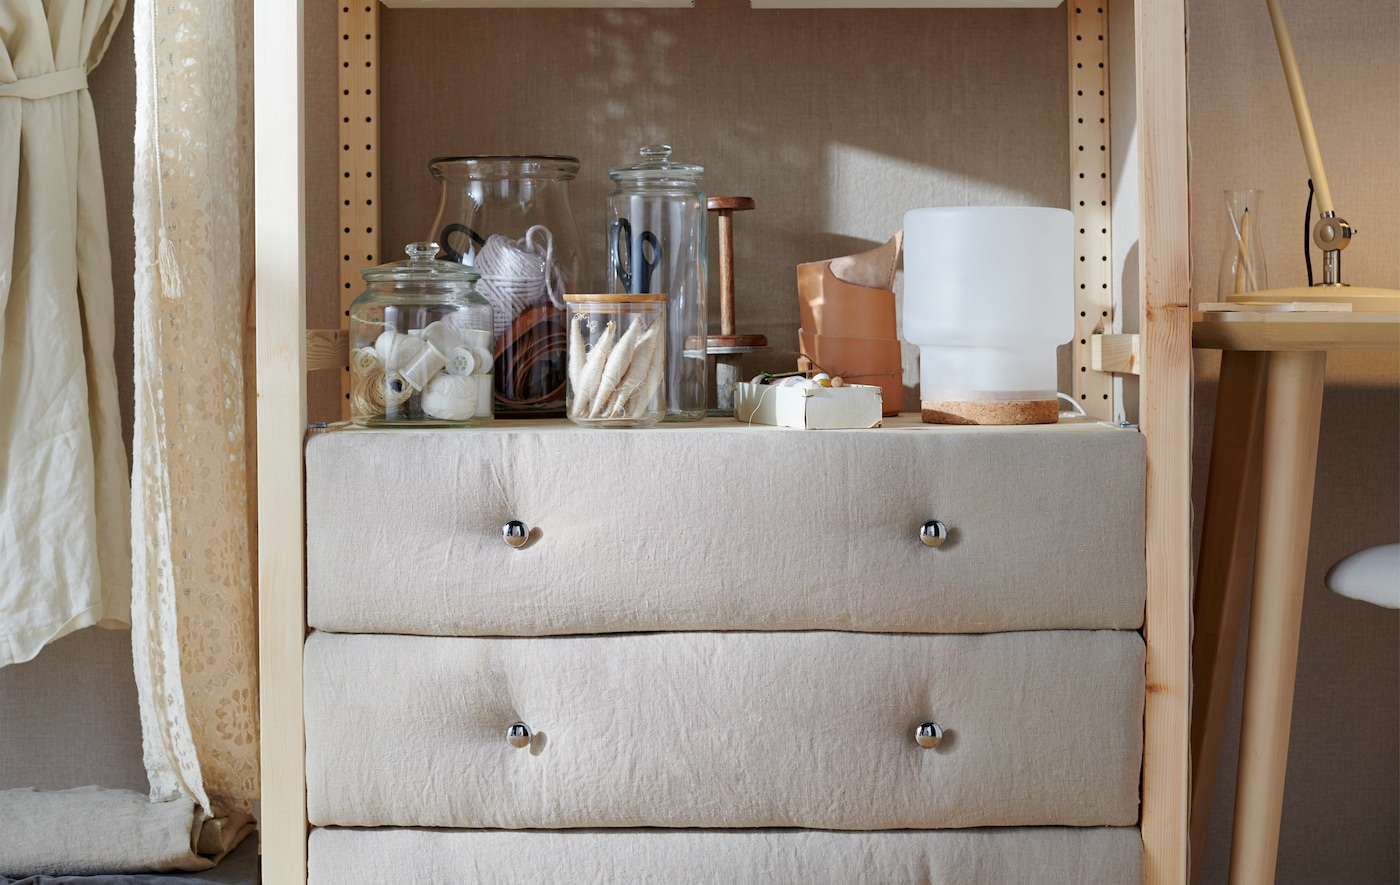 Update a chest of drawers with fabric for a cosier look! Then use it to store your sewing supplies. Try IKEA IVAR 3-drawer chest in natural pine.